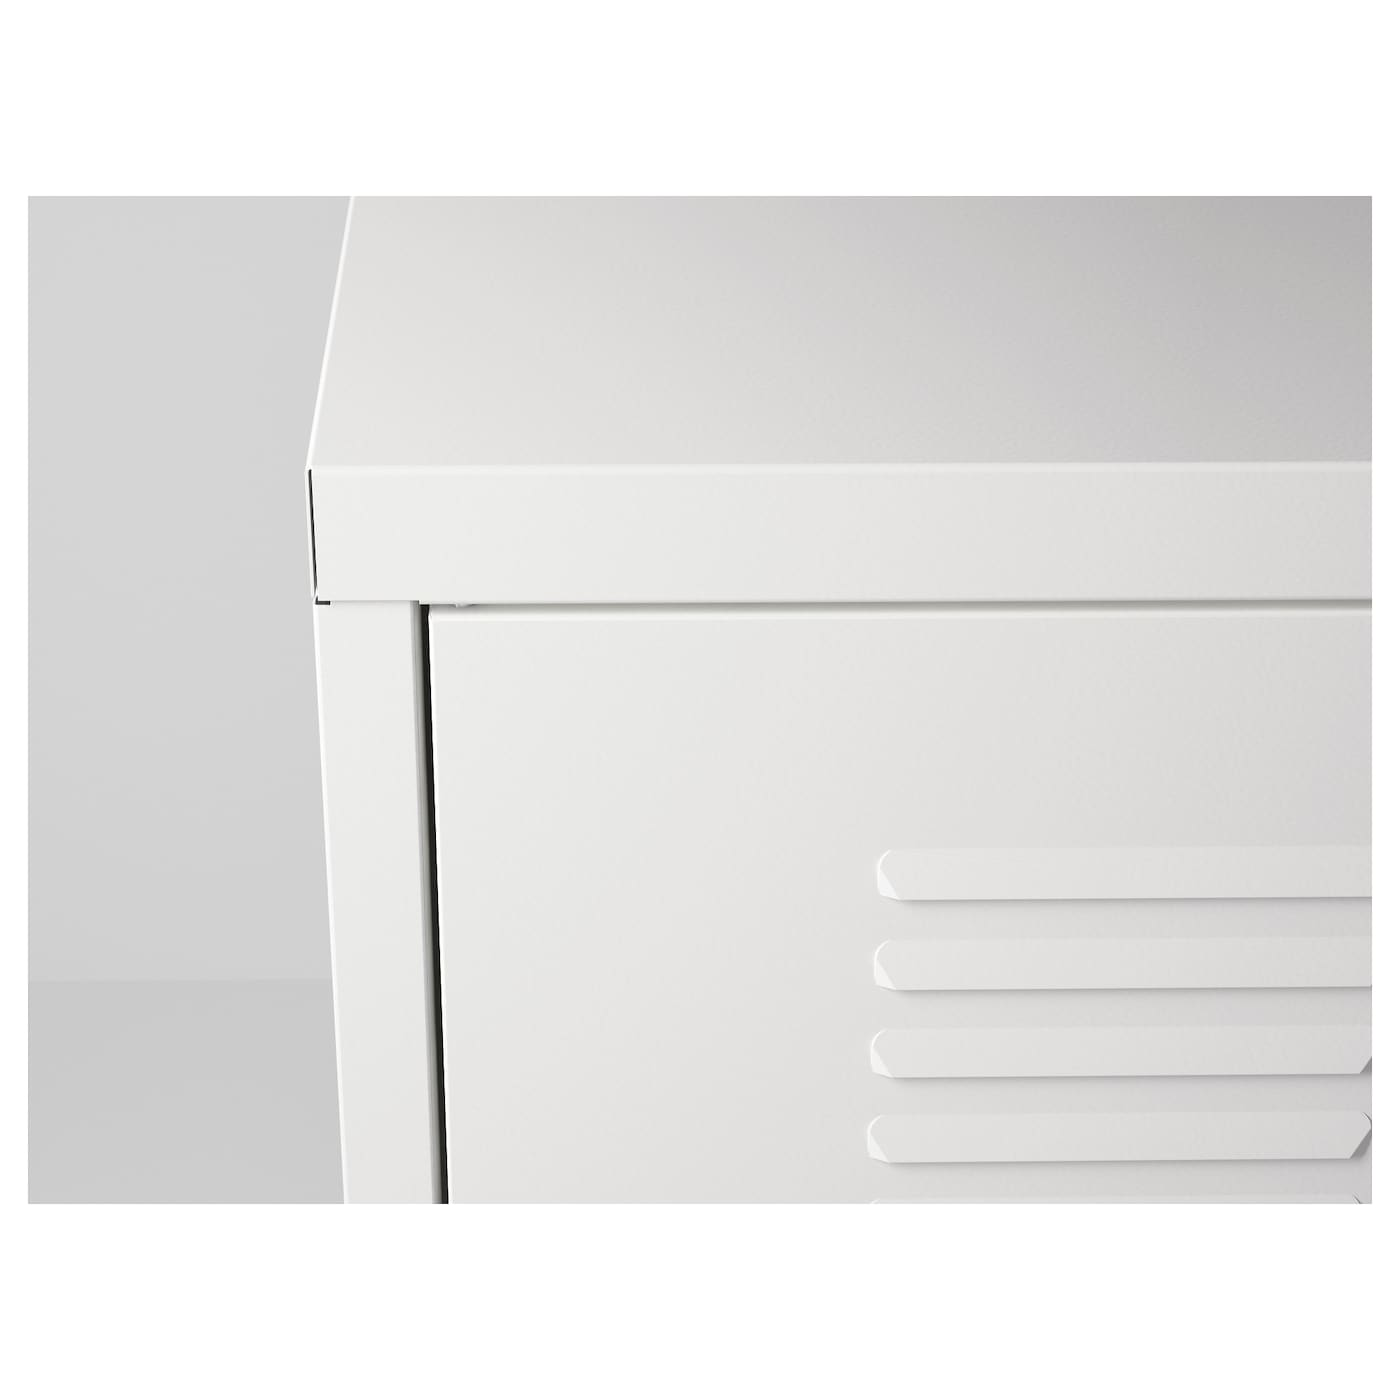 ikea ps armoire m tallique blanc 119 x 63 cm ikea. Black Bedroom Furniture Sets. Home Design Ideas